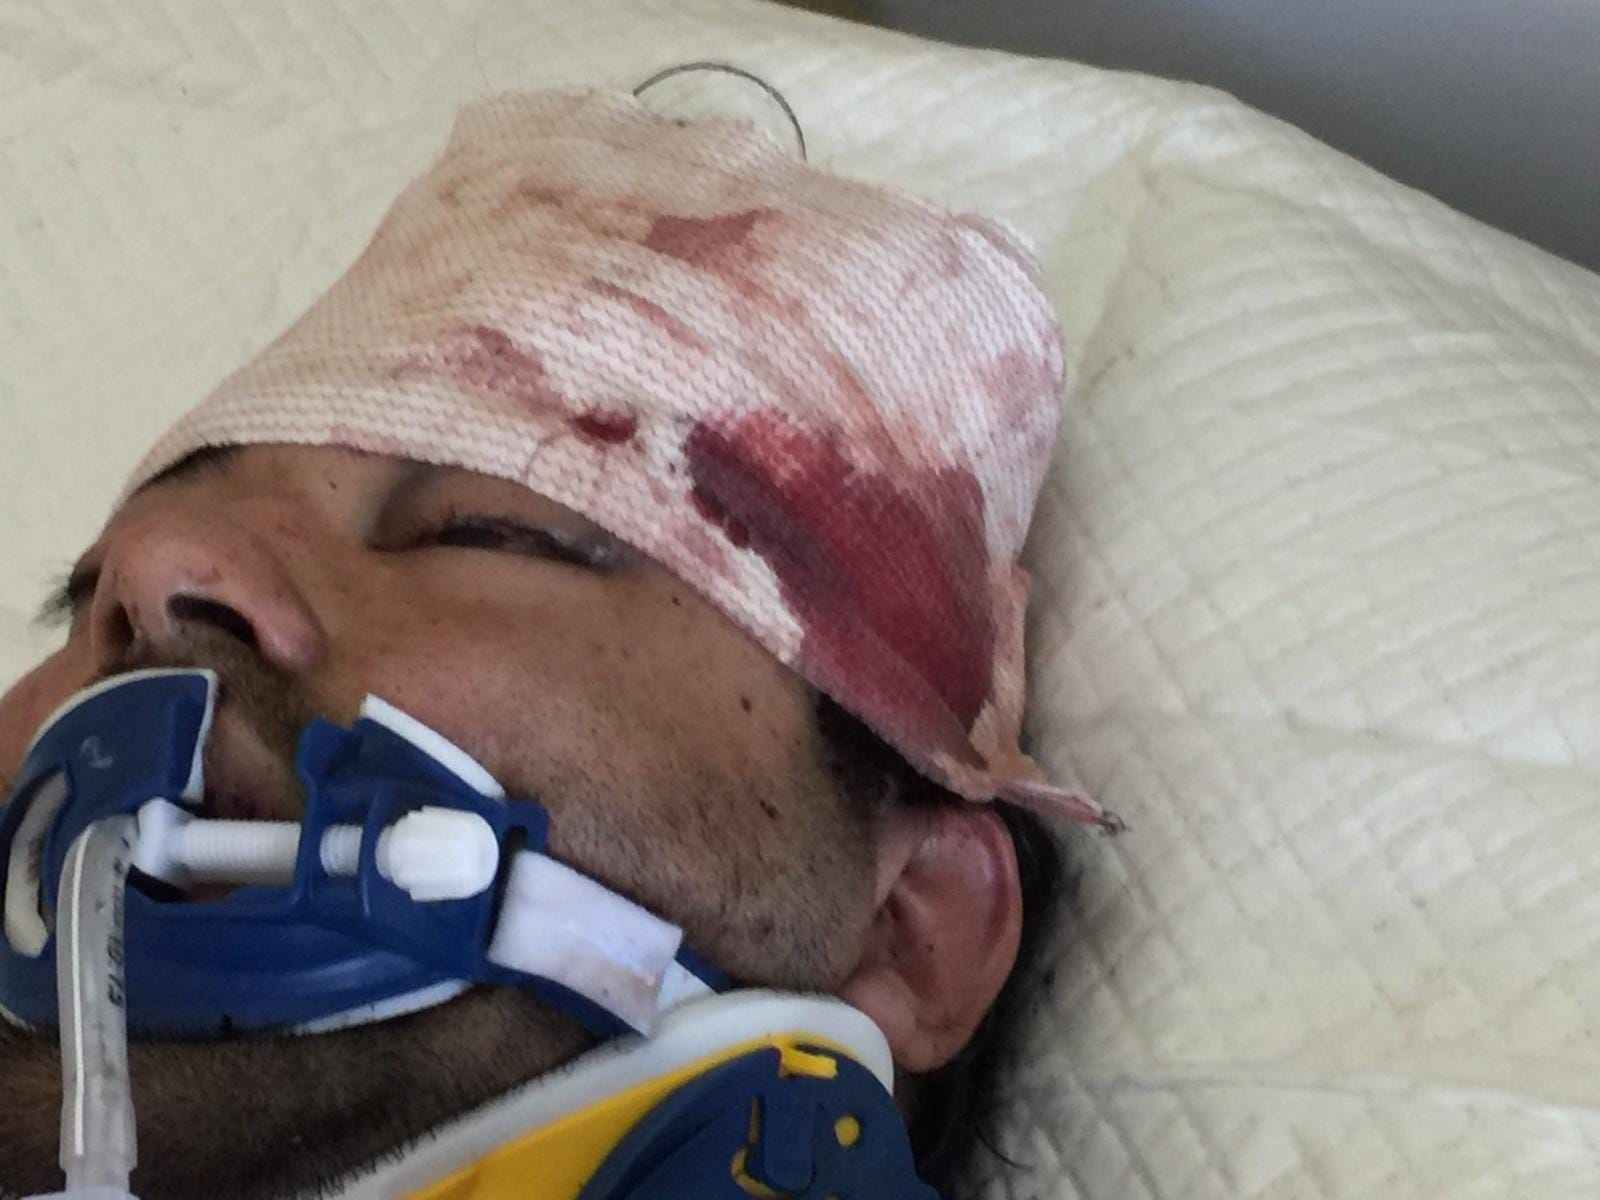 Hector Arreola was hospitalized after his police encounter but removed from life support the next day.